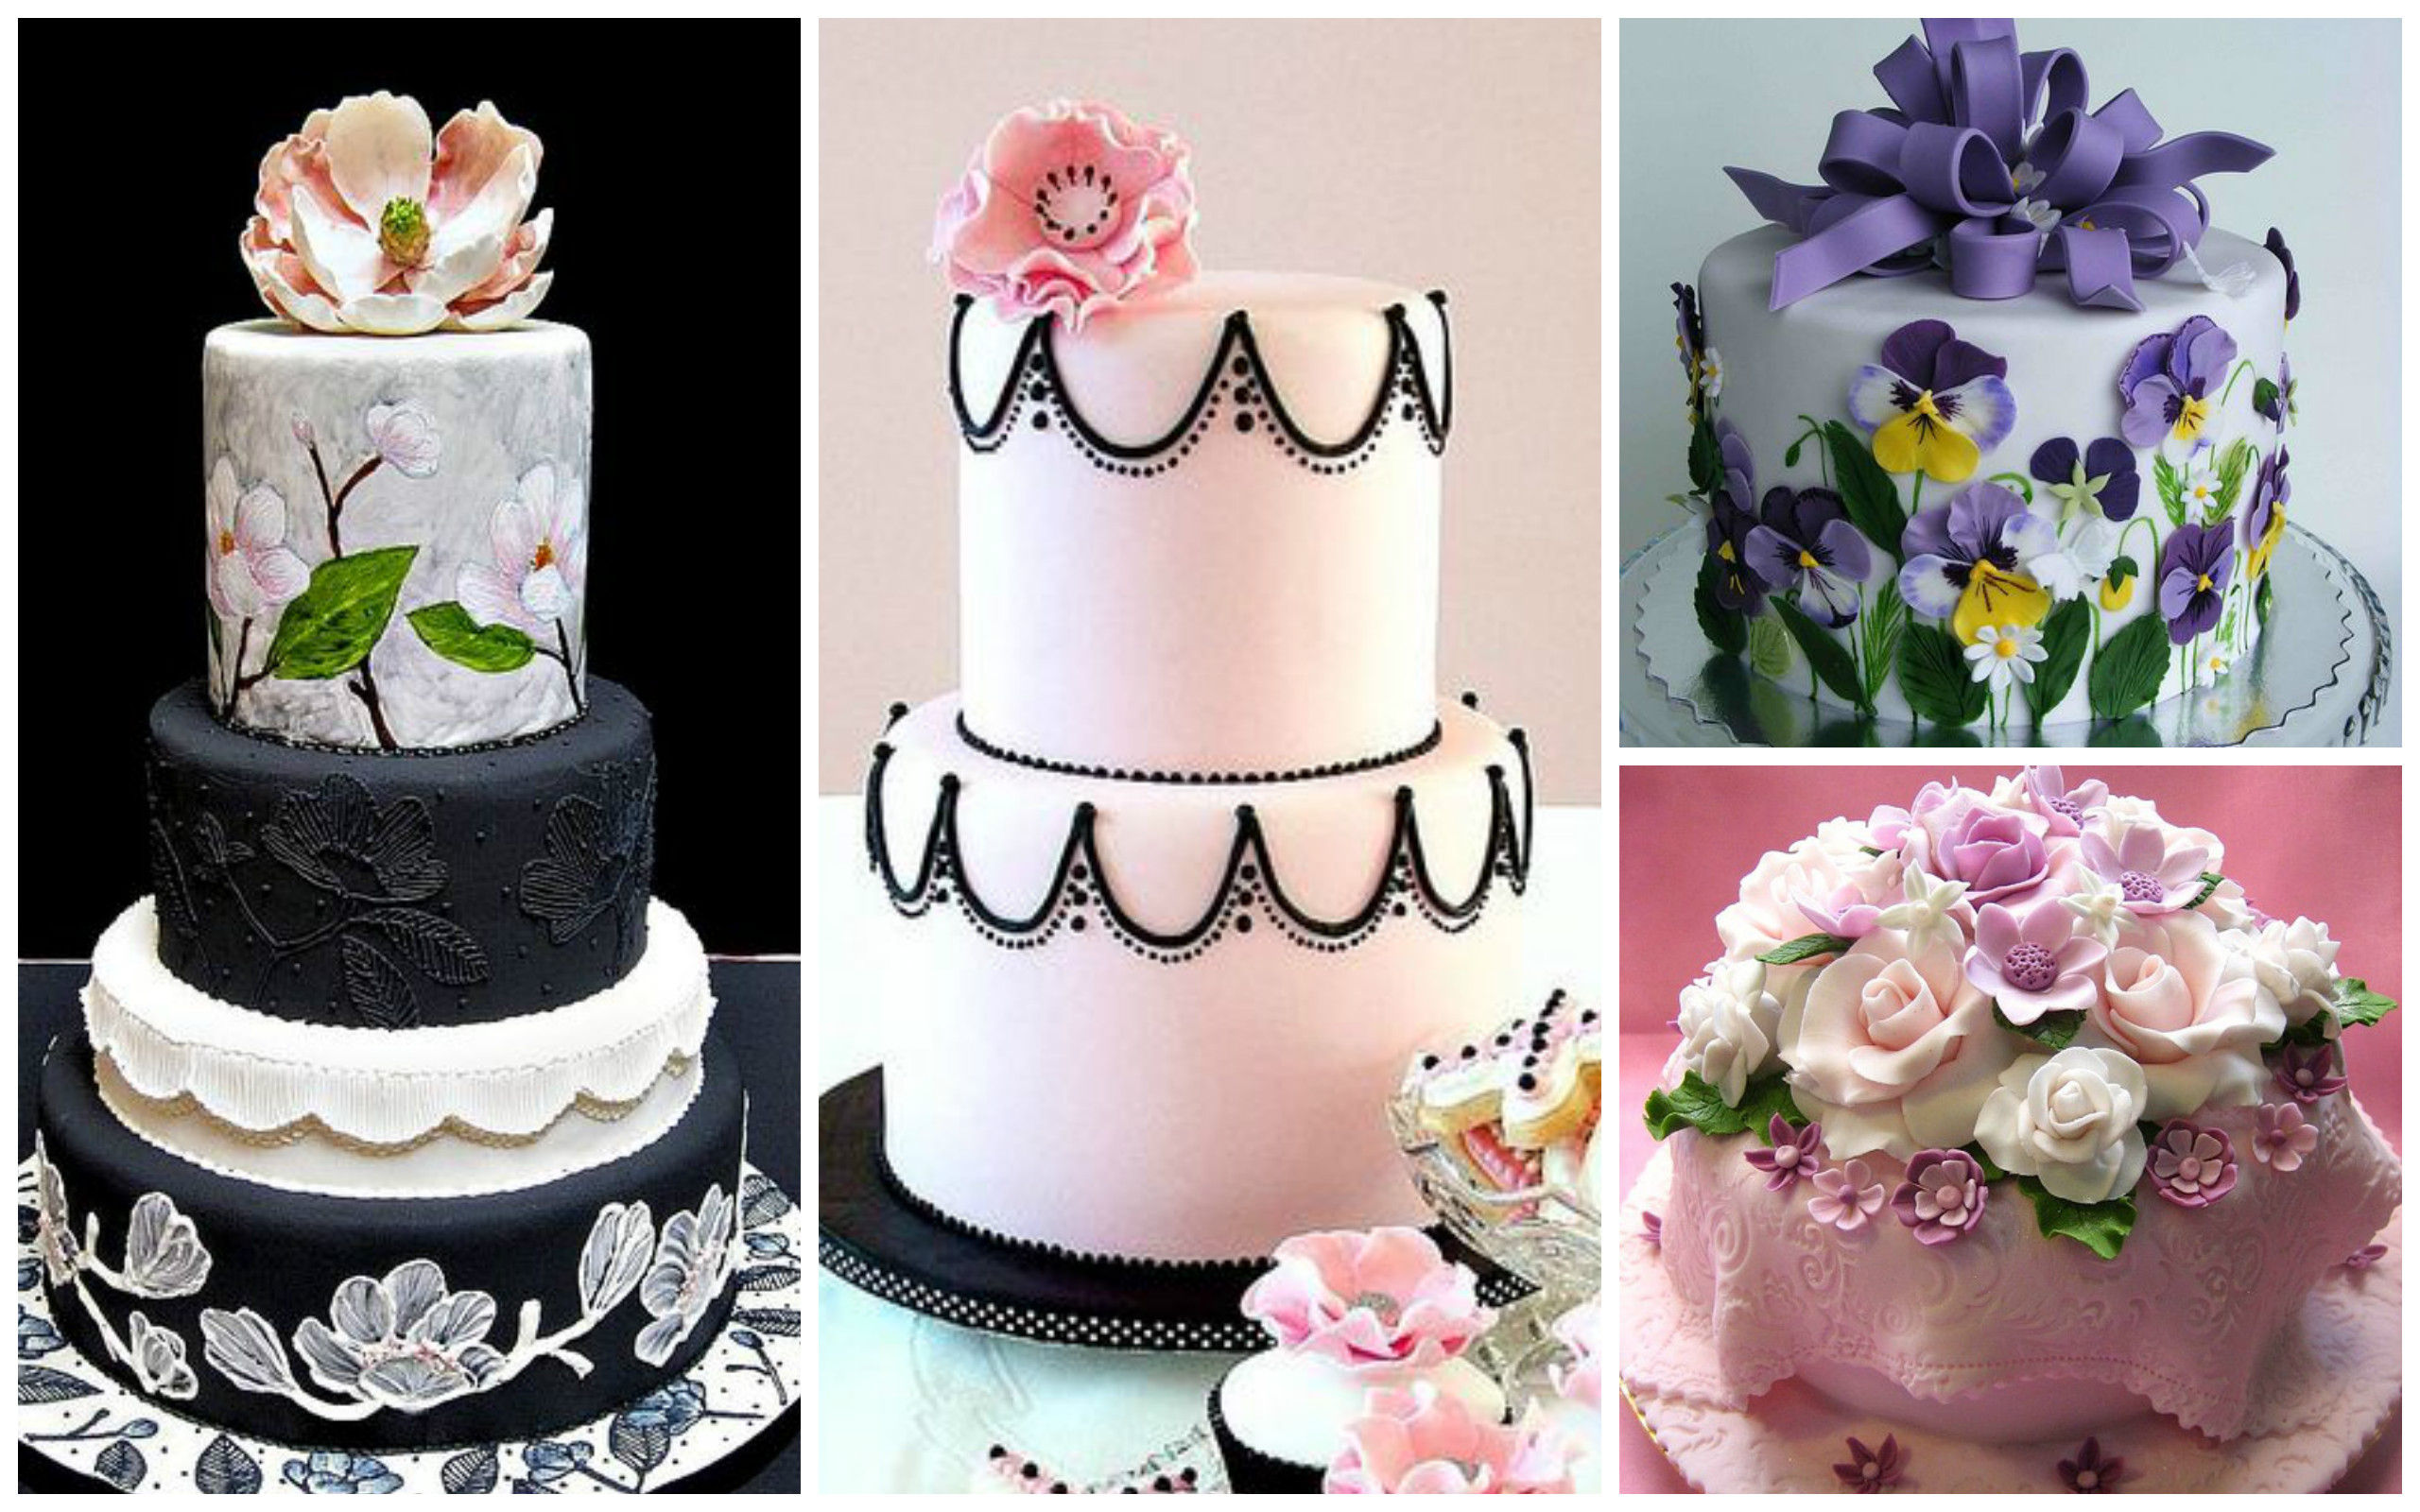 Cake Ideas For Competitions